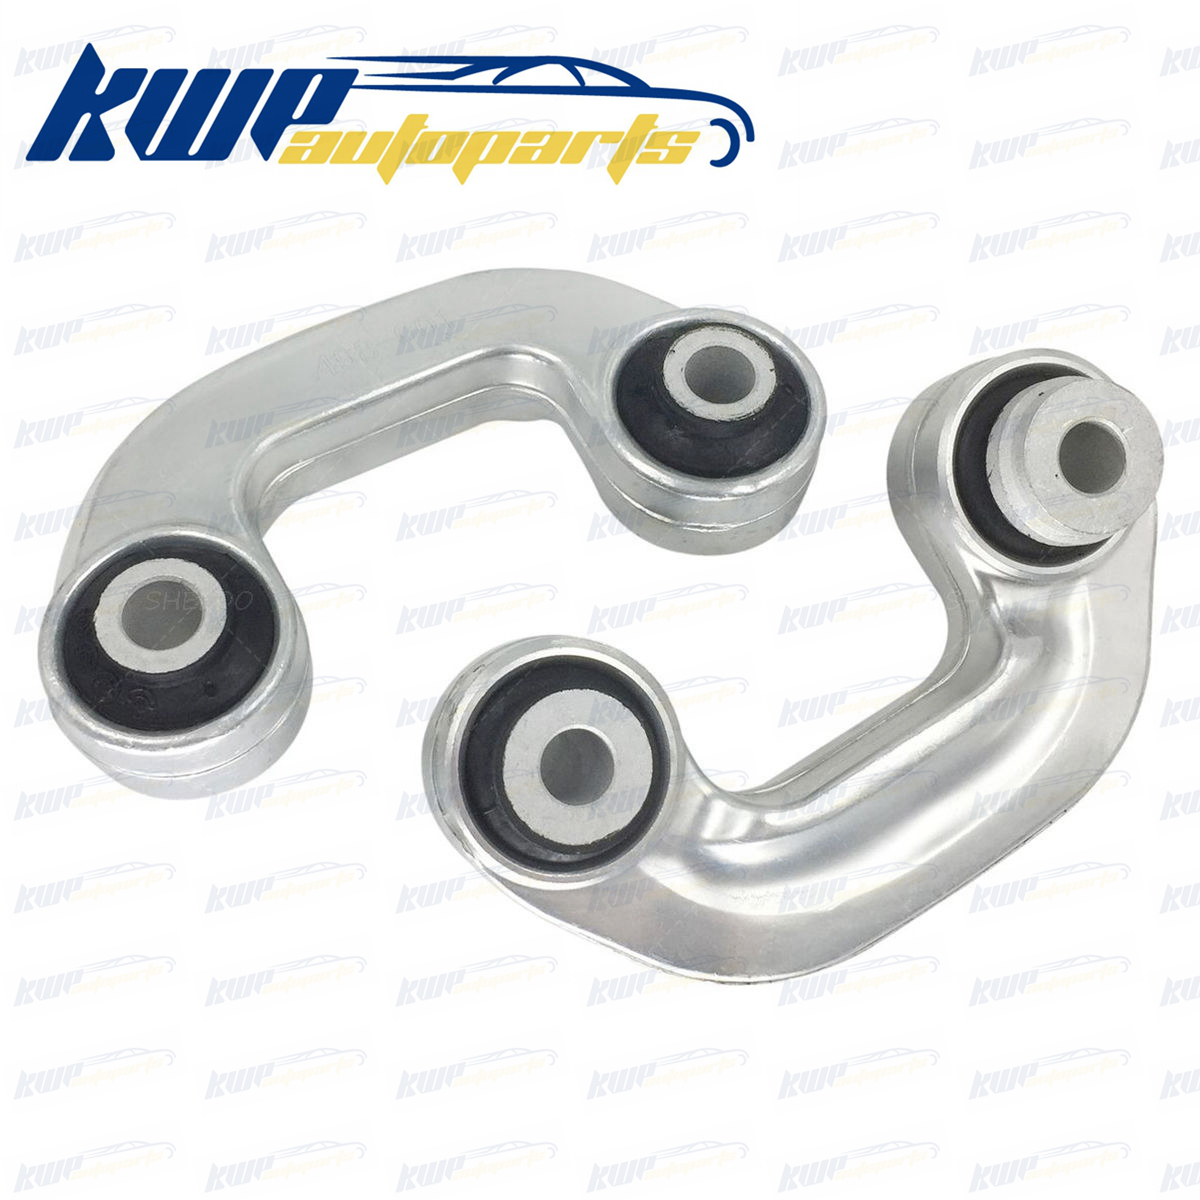 AUDI A6 FRONT LOWER CONTROL ARM BALL JOINT REAR ARM Track Rod TIE ROD END LH RH